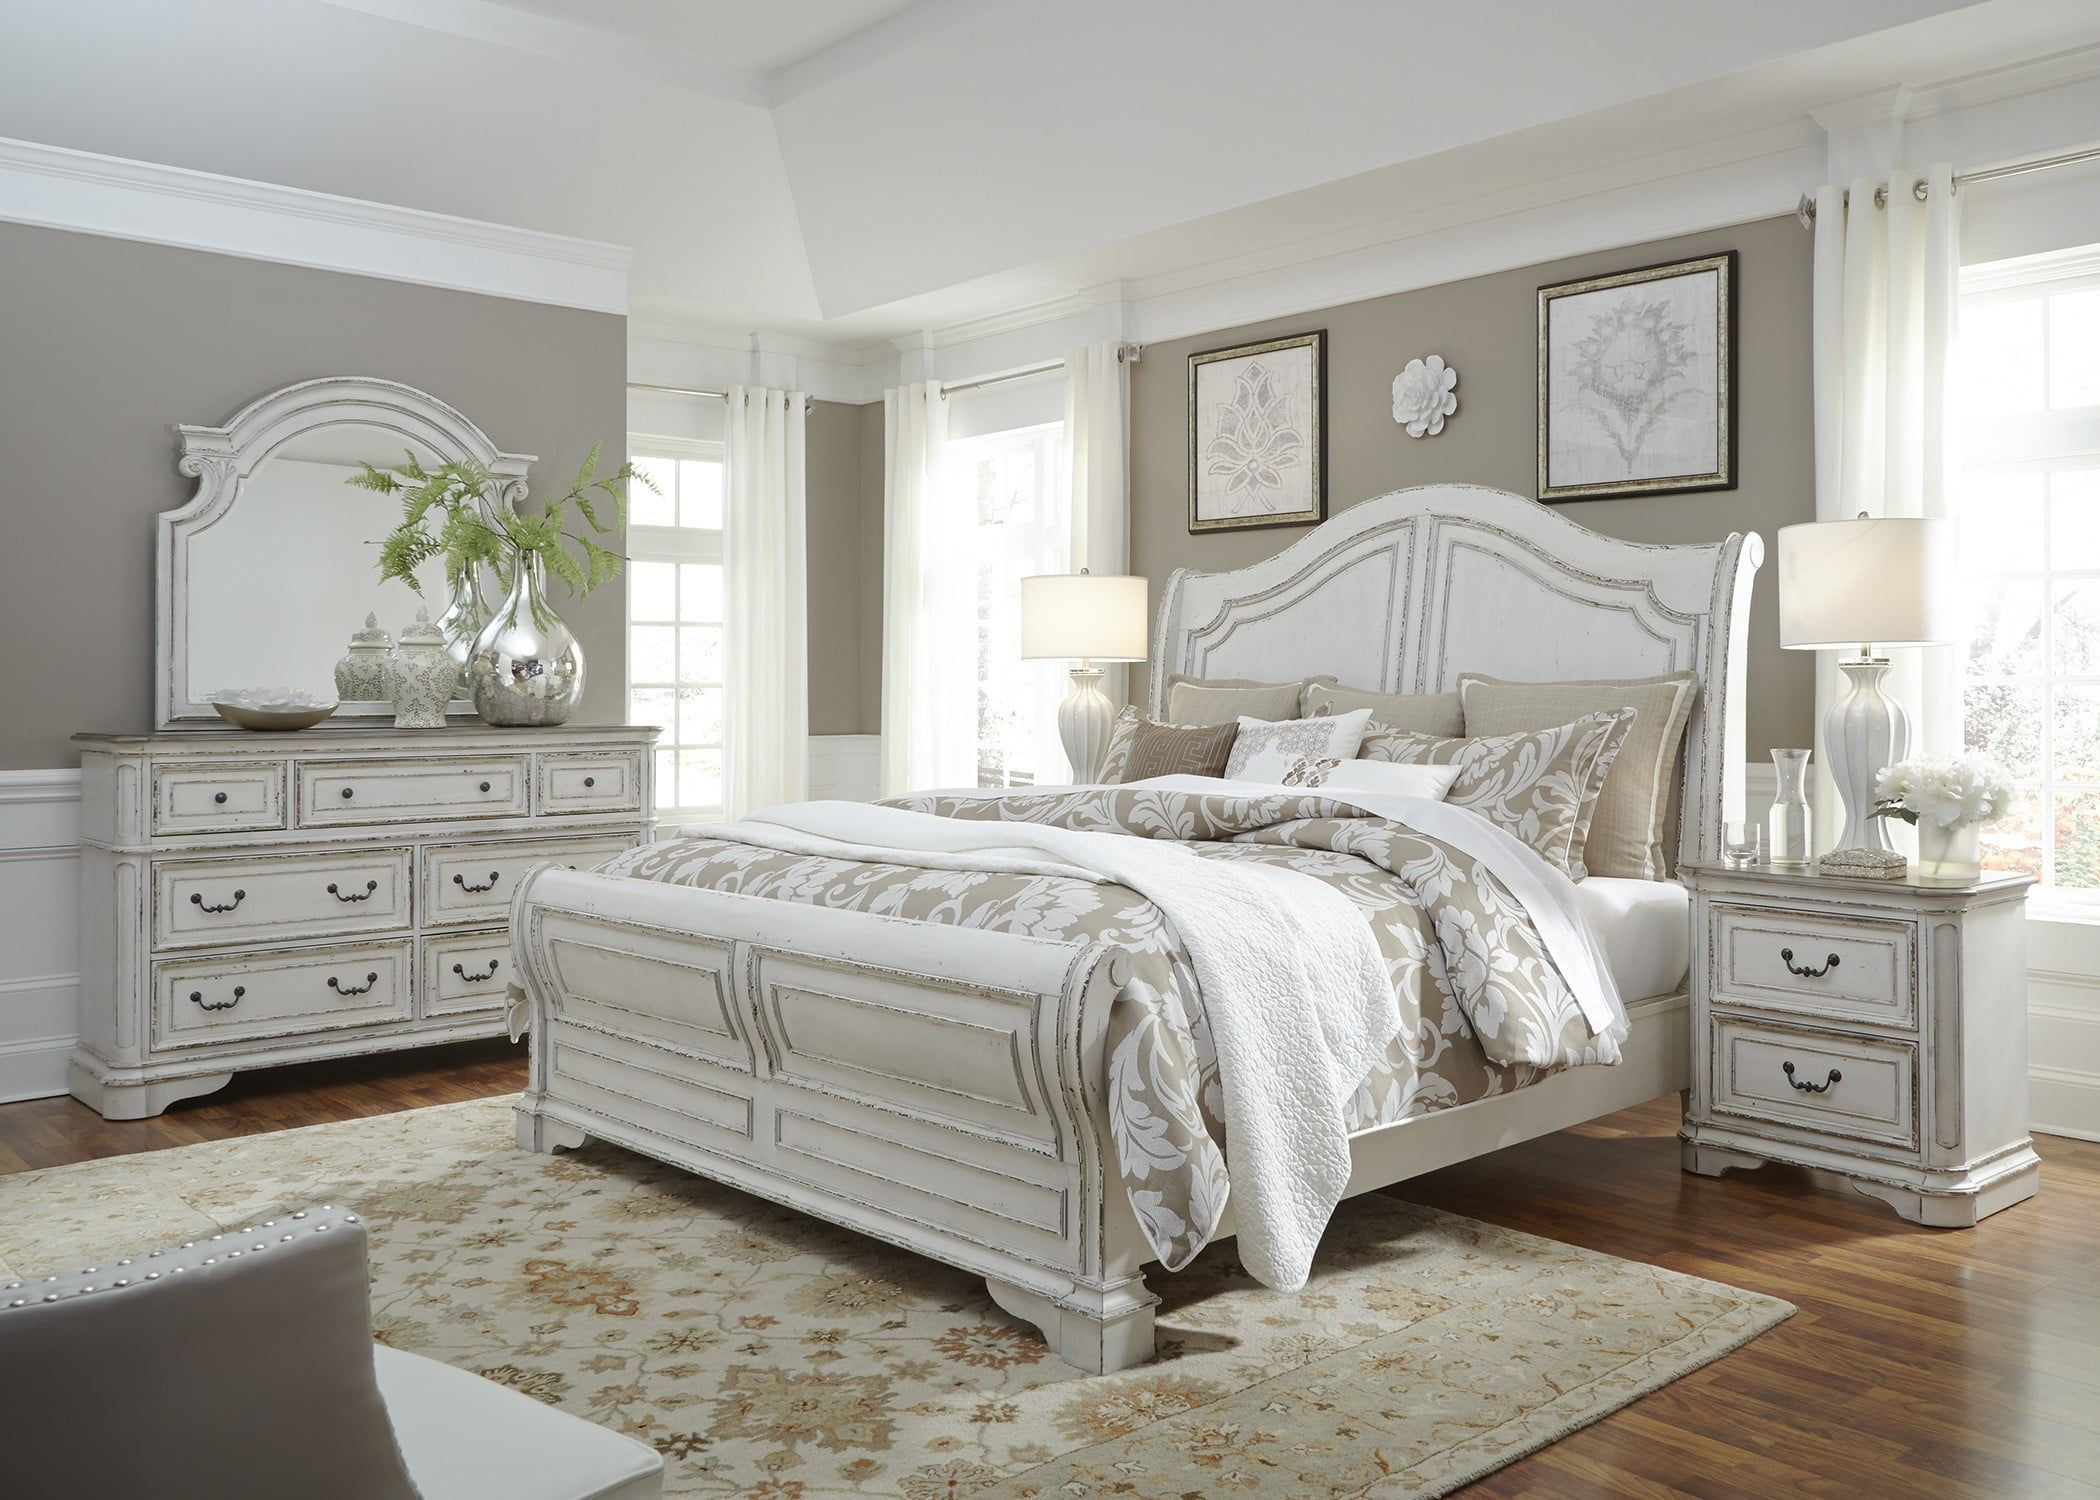 Magnolia Manor Antique White Sleigh Bedroom Set 67 Antique White